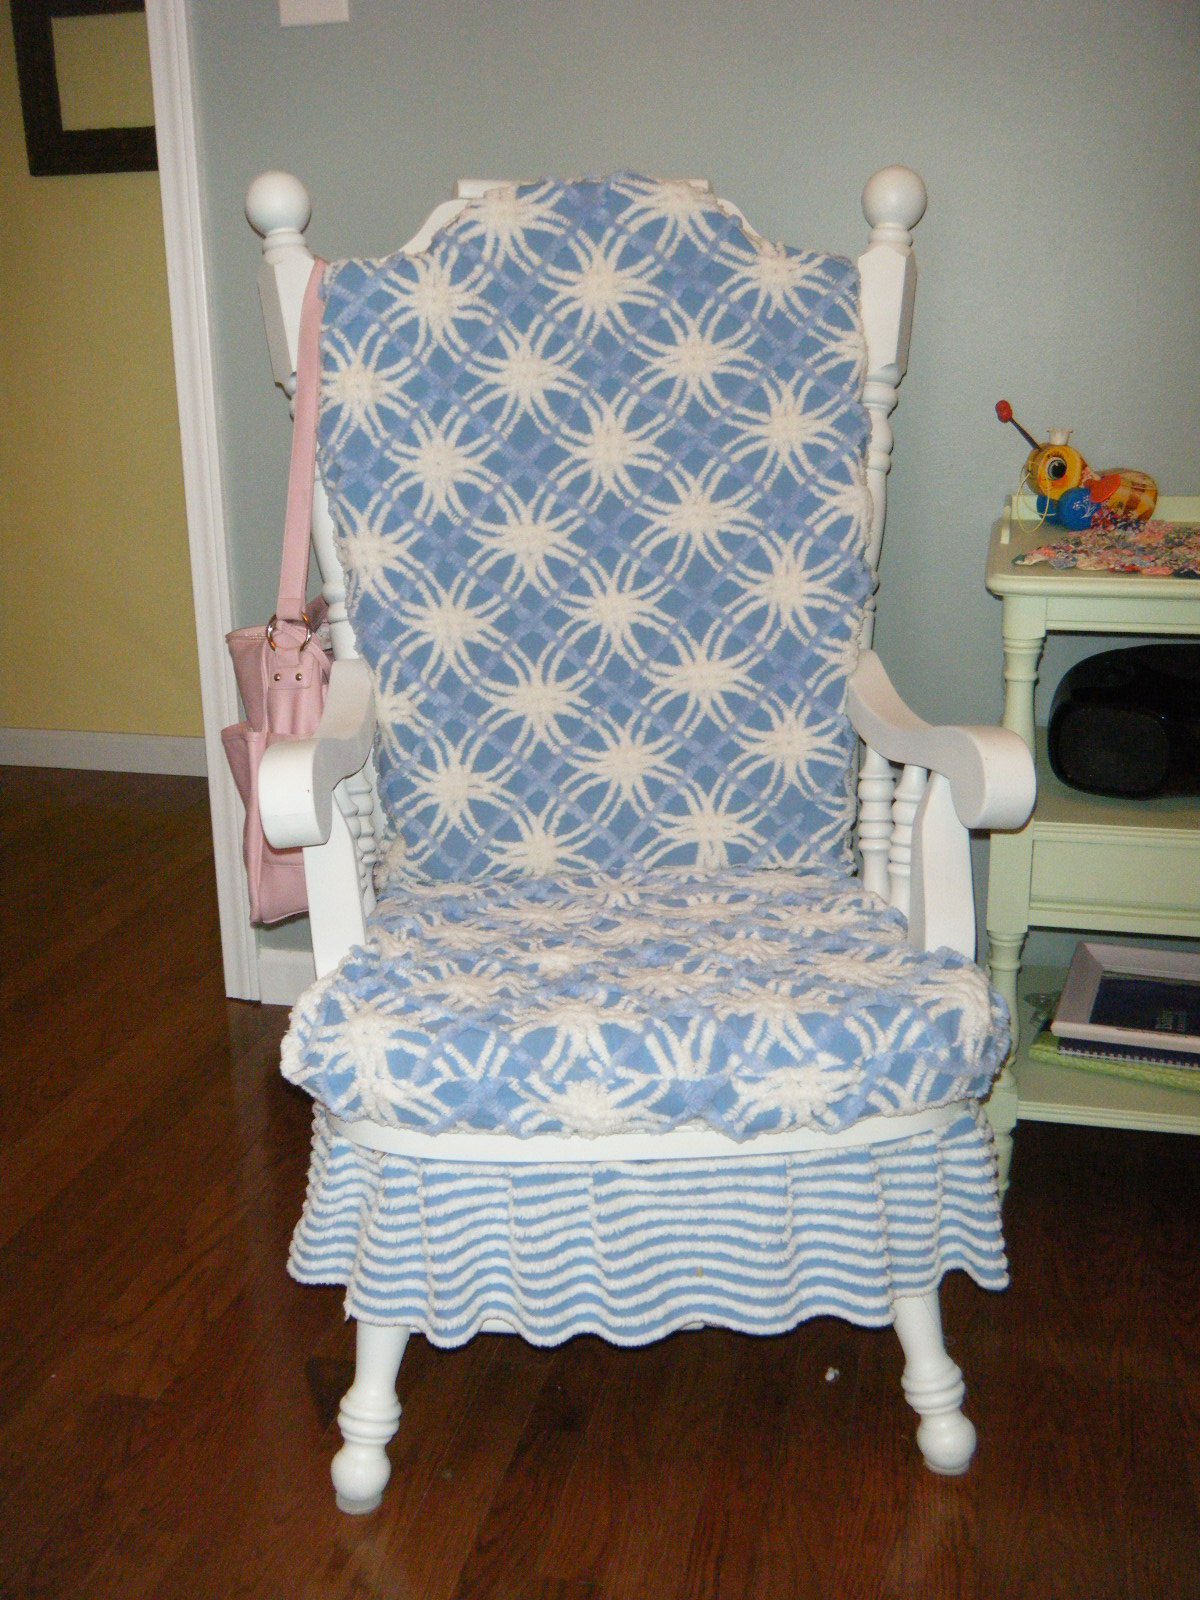 Scary Rocking Chair ~ Makin projiks rocking chair from scary to sweet